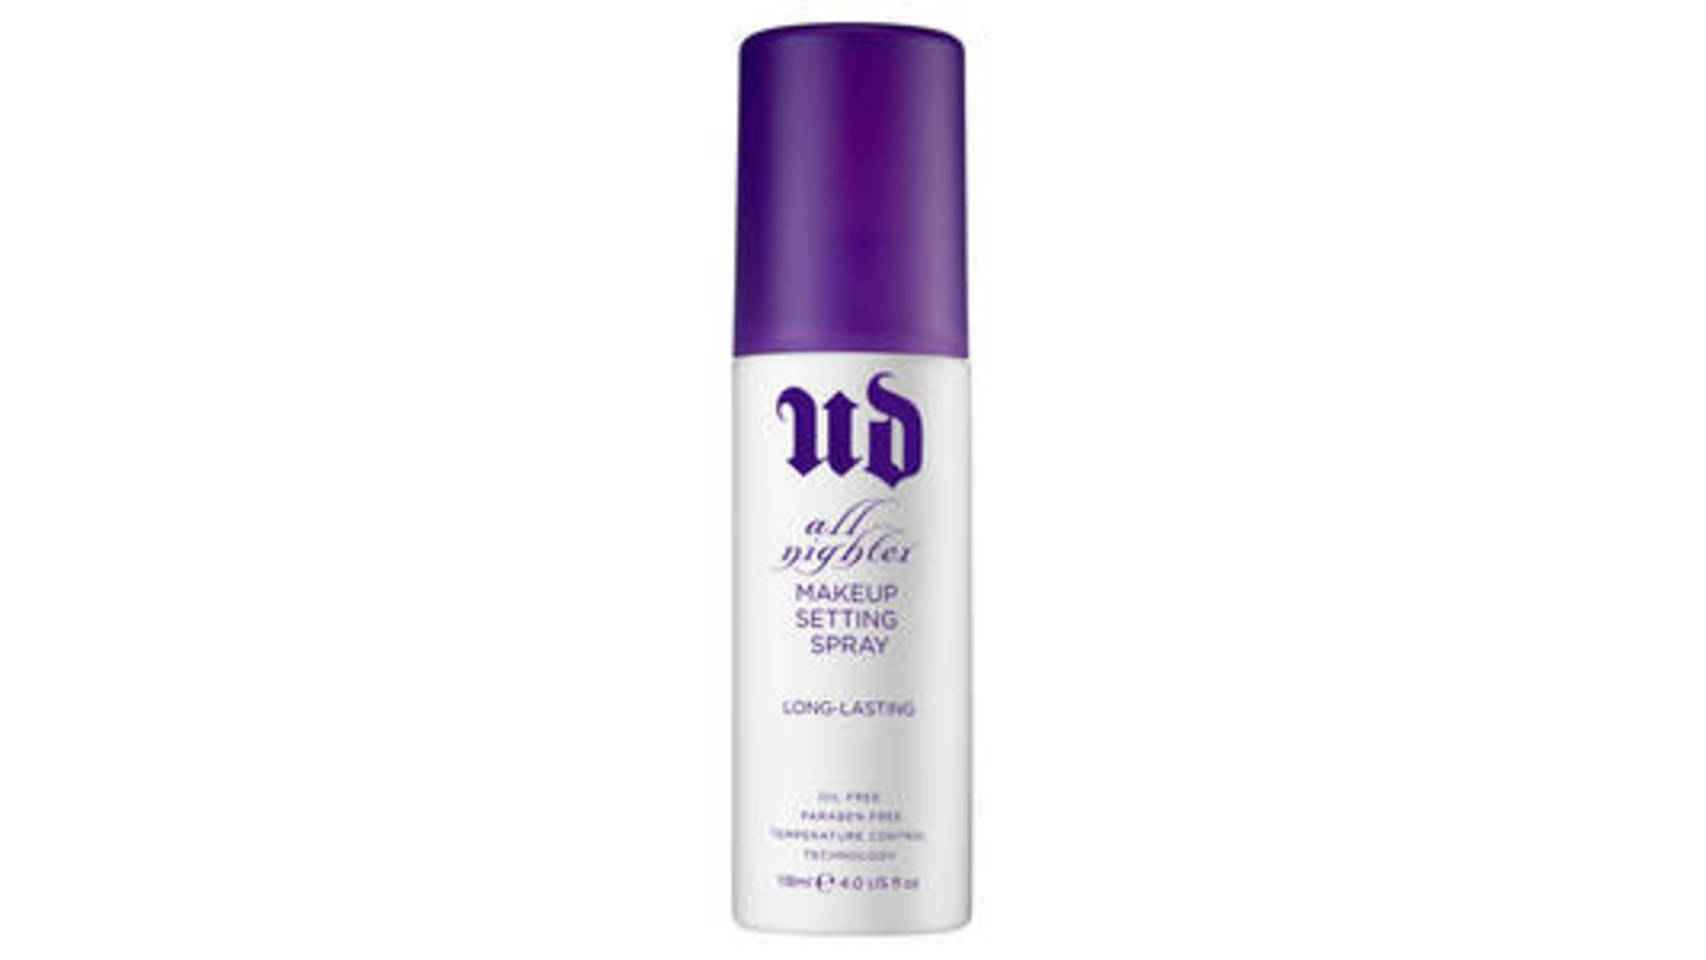 Espray fijador All Nighter de Urban Decay, 27,50€.